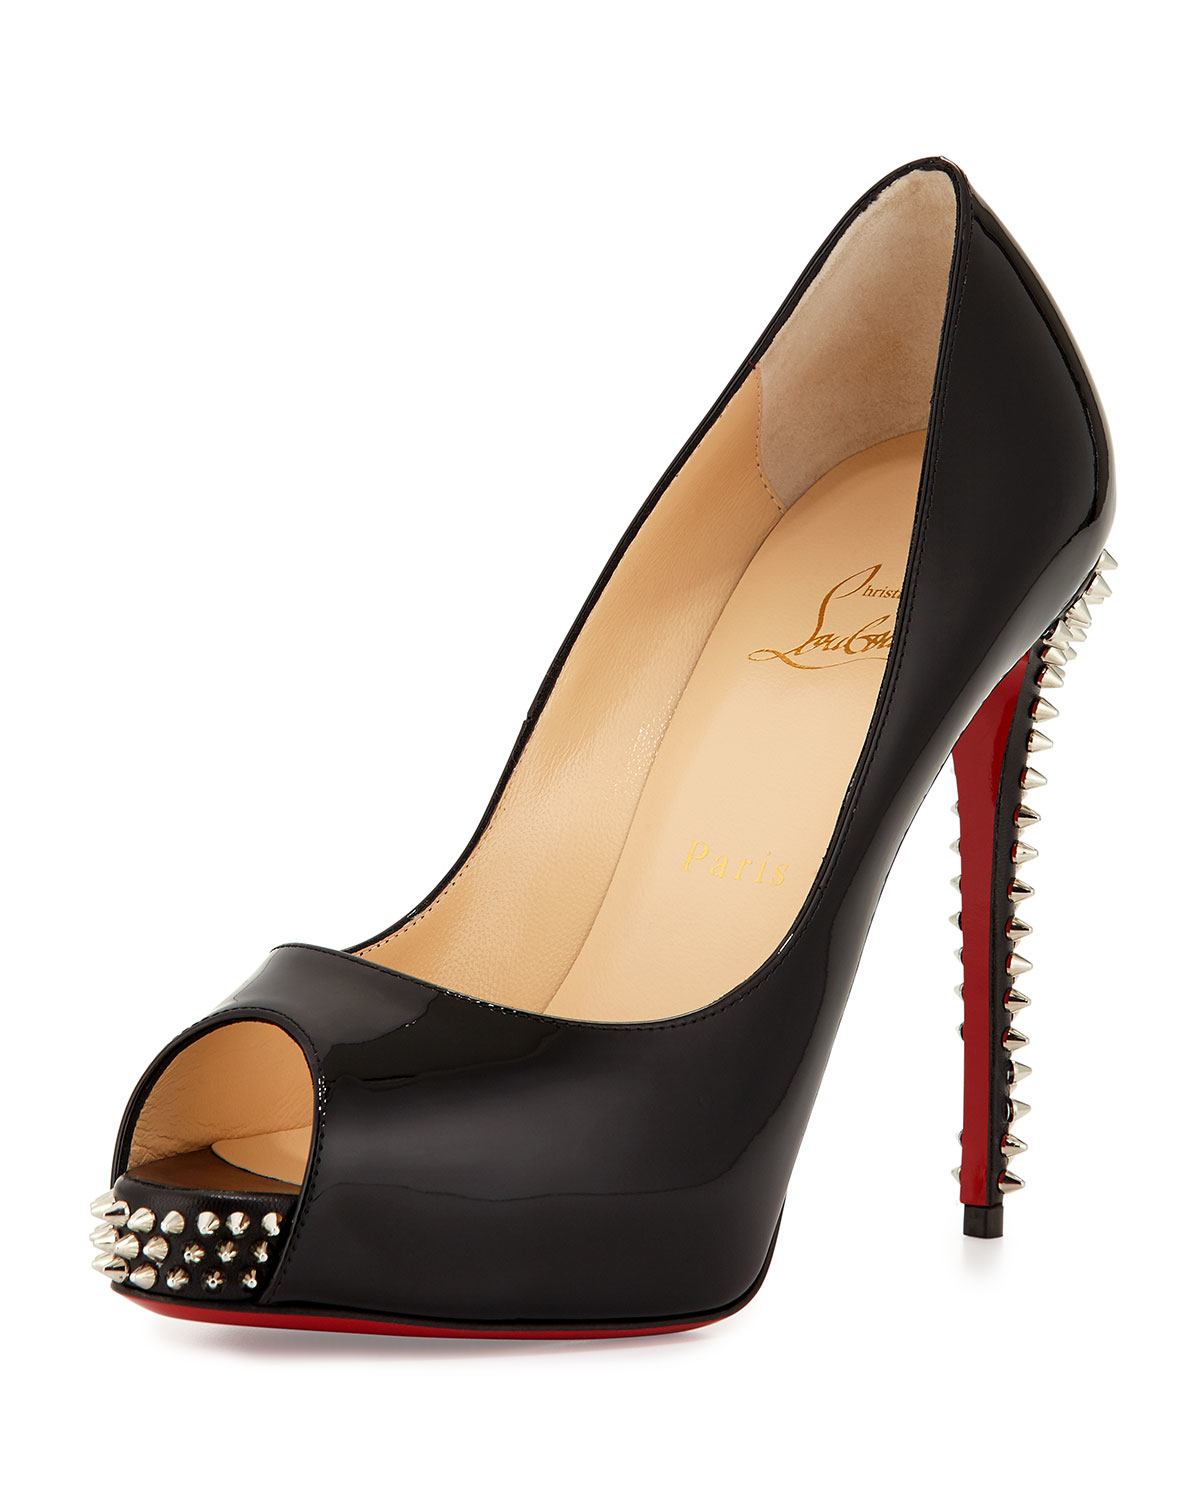 christian-louboutin-blacksilver-new-very-prive-studded-peep-toe-red-sole-pump-black-product-2-351977930-normal.jpeg